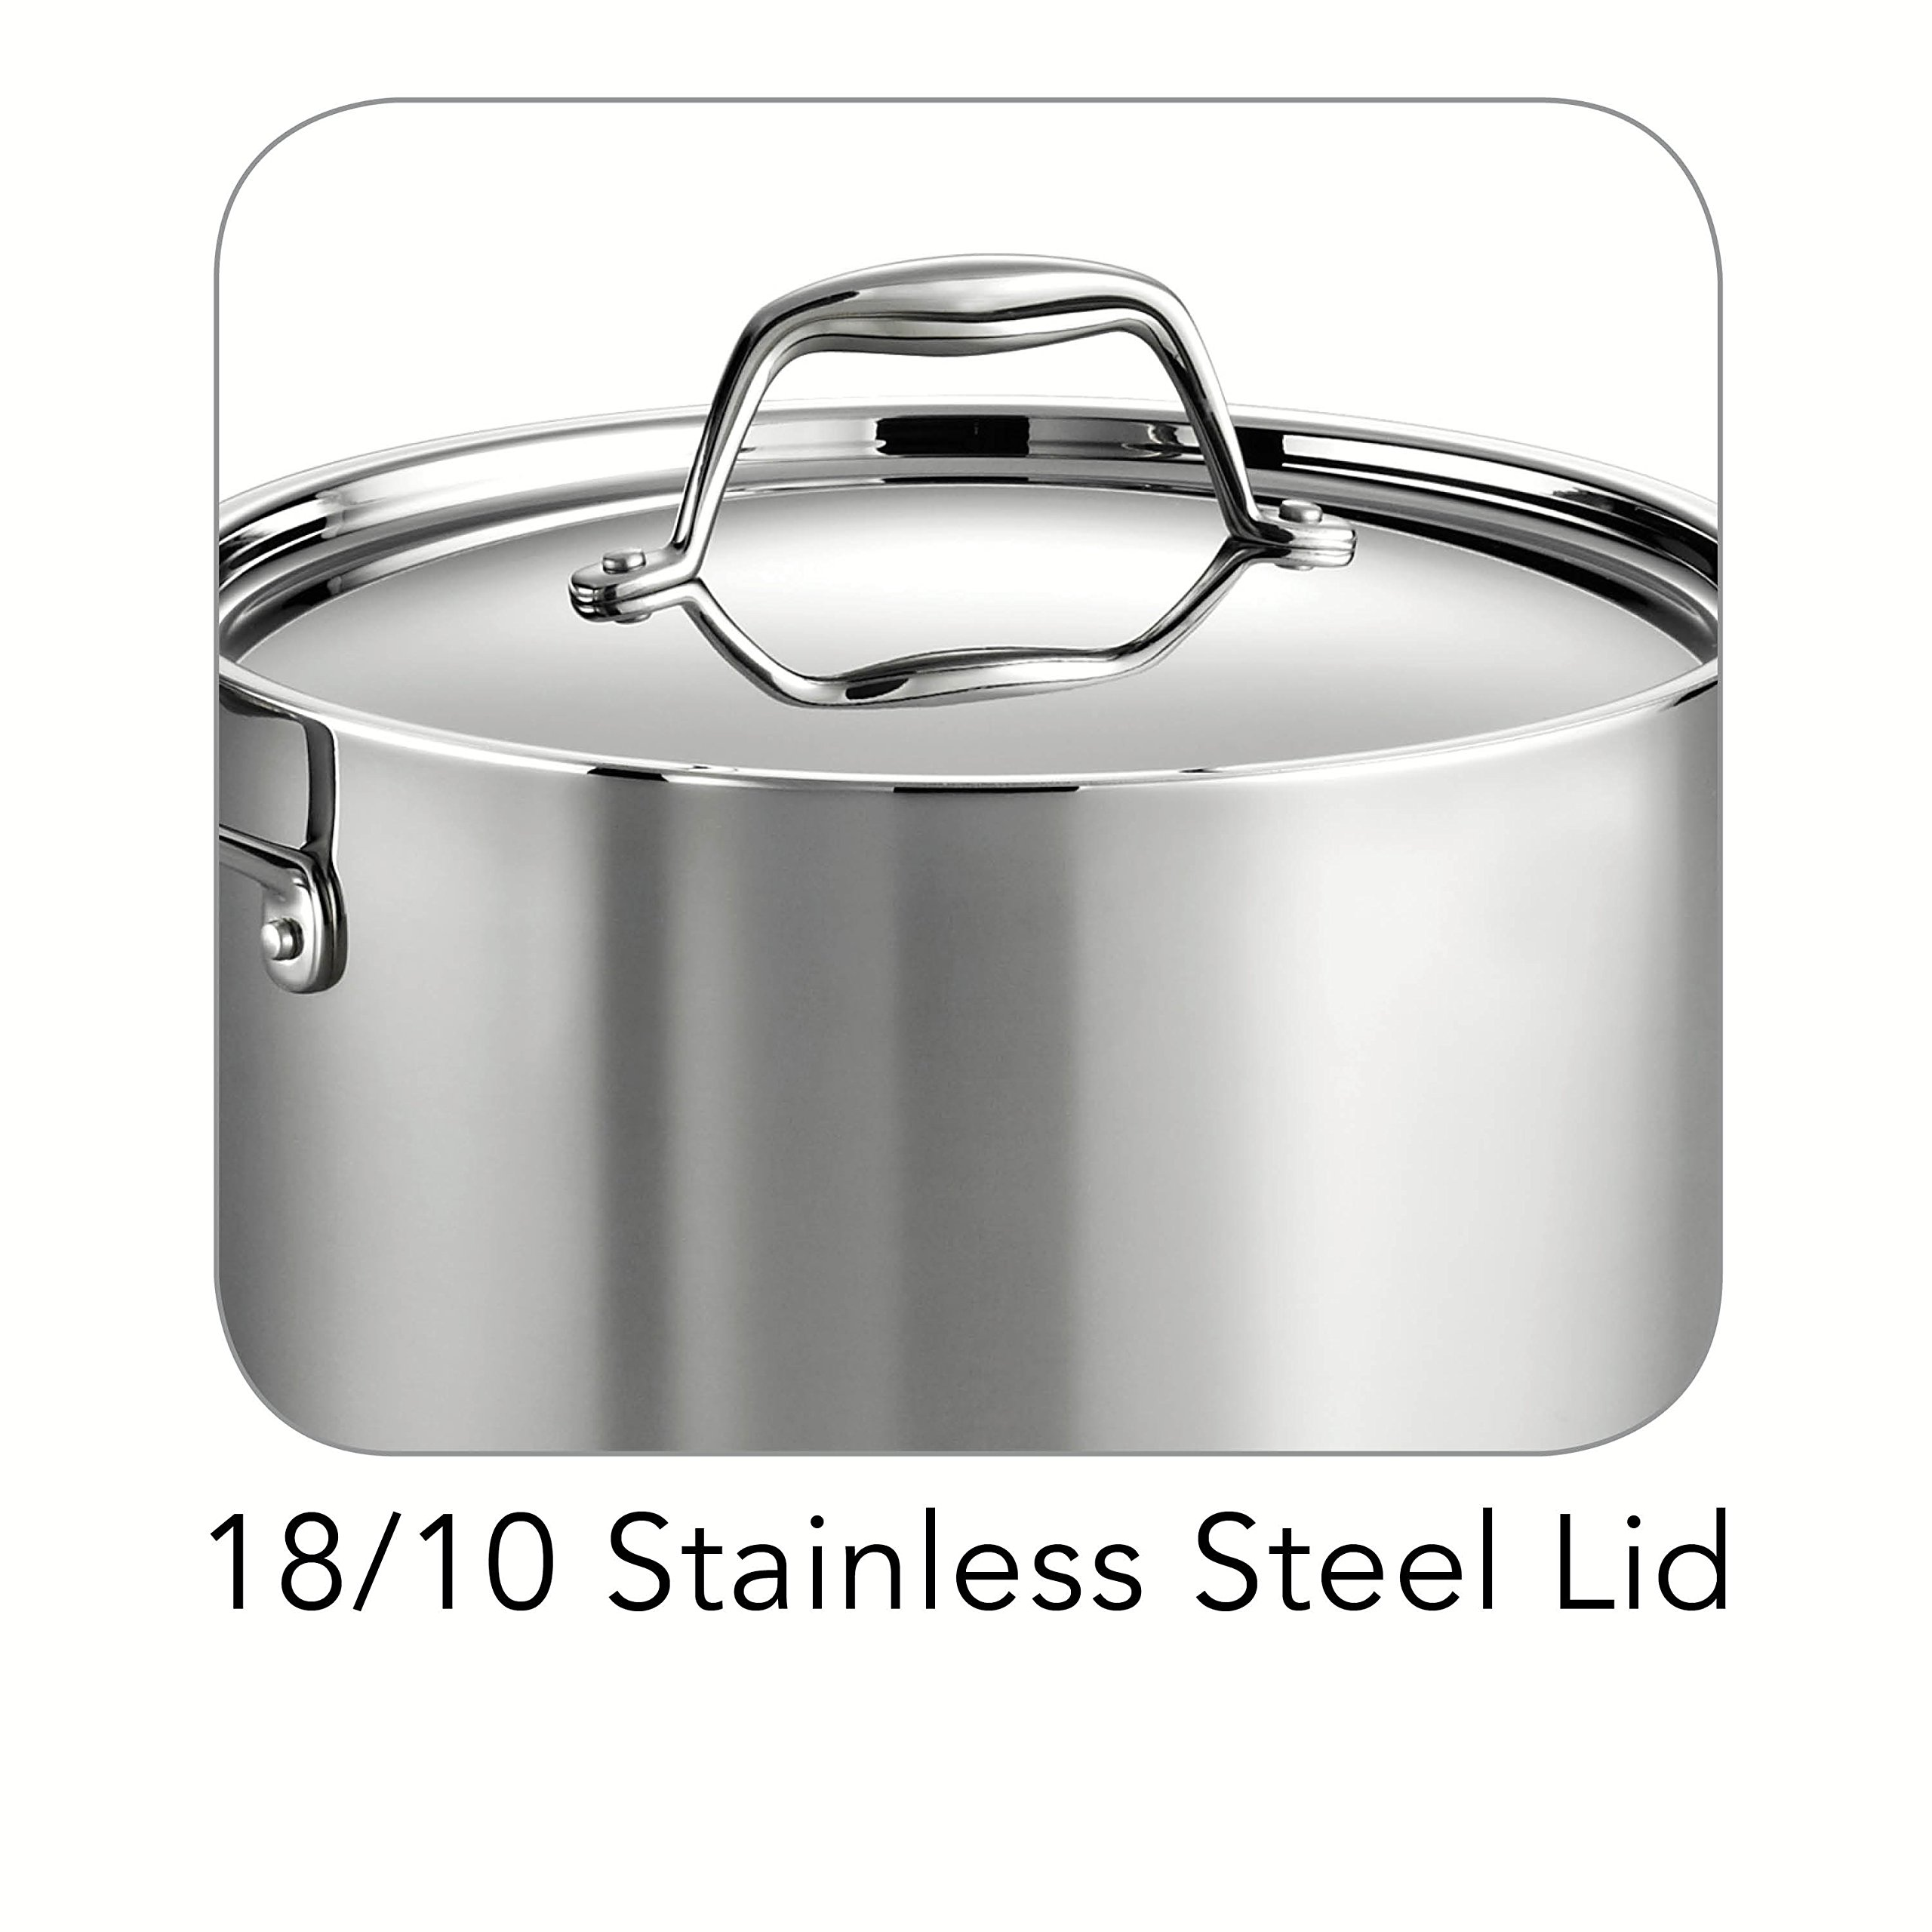 Tramontina 80116/041DS Gourmet 18/10 Stainless Steel Induction-Ready Tri-Ply Clad Covered Stock Pot, 8-Quart, NSF-Certified, Made in Brazil by Tramontina (Image #4)